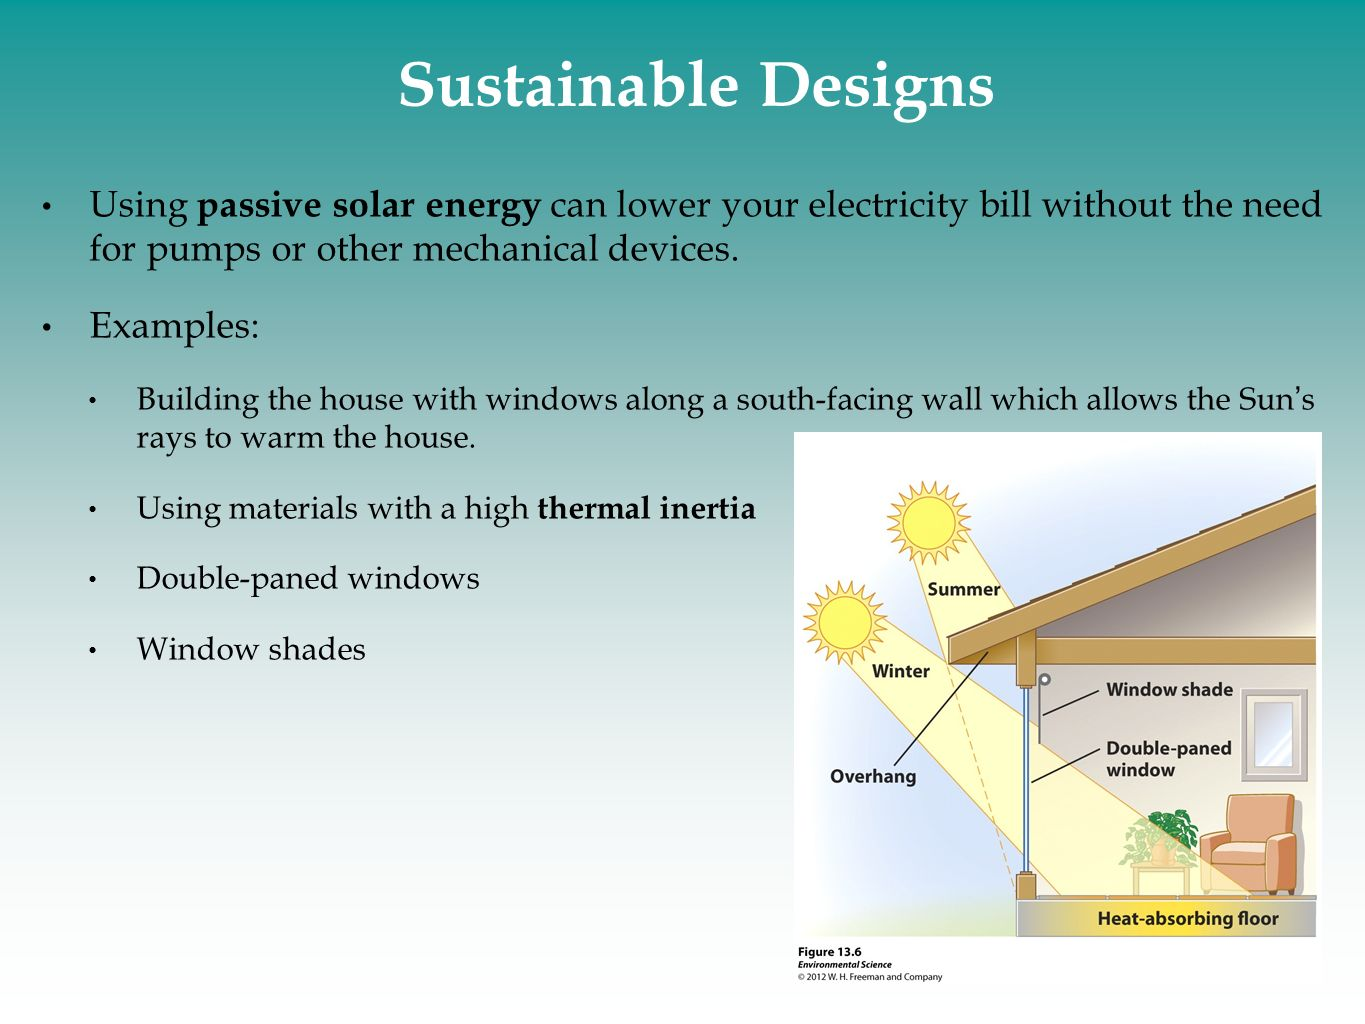 Sustainable Designs Using passive solar energy can lower your electricity bill without the need for pumps or other mechanical devices.